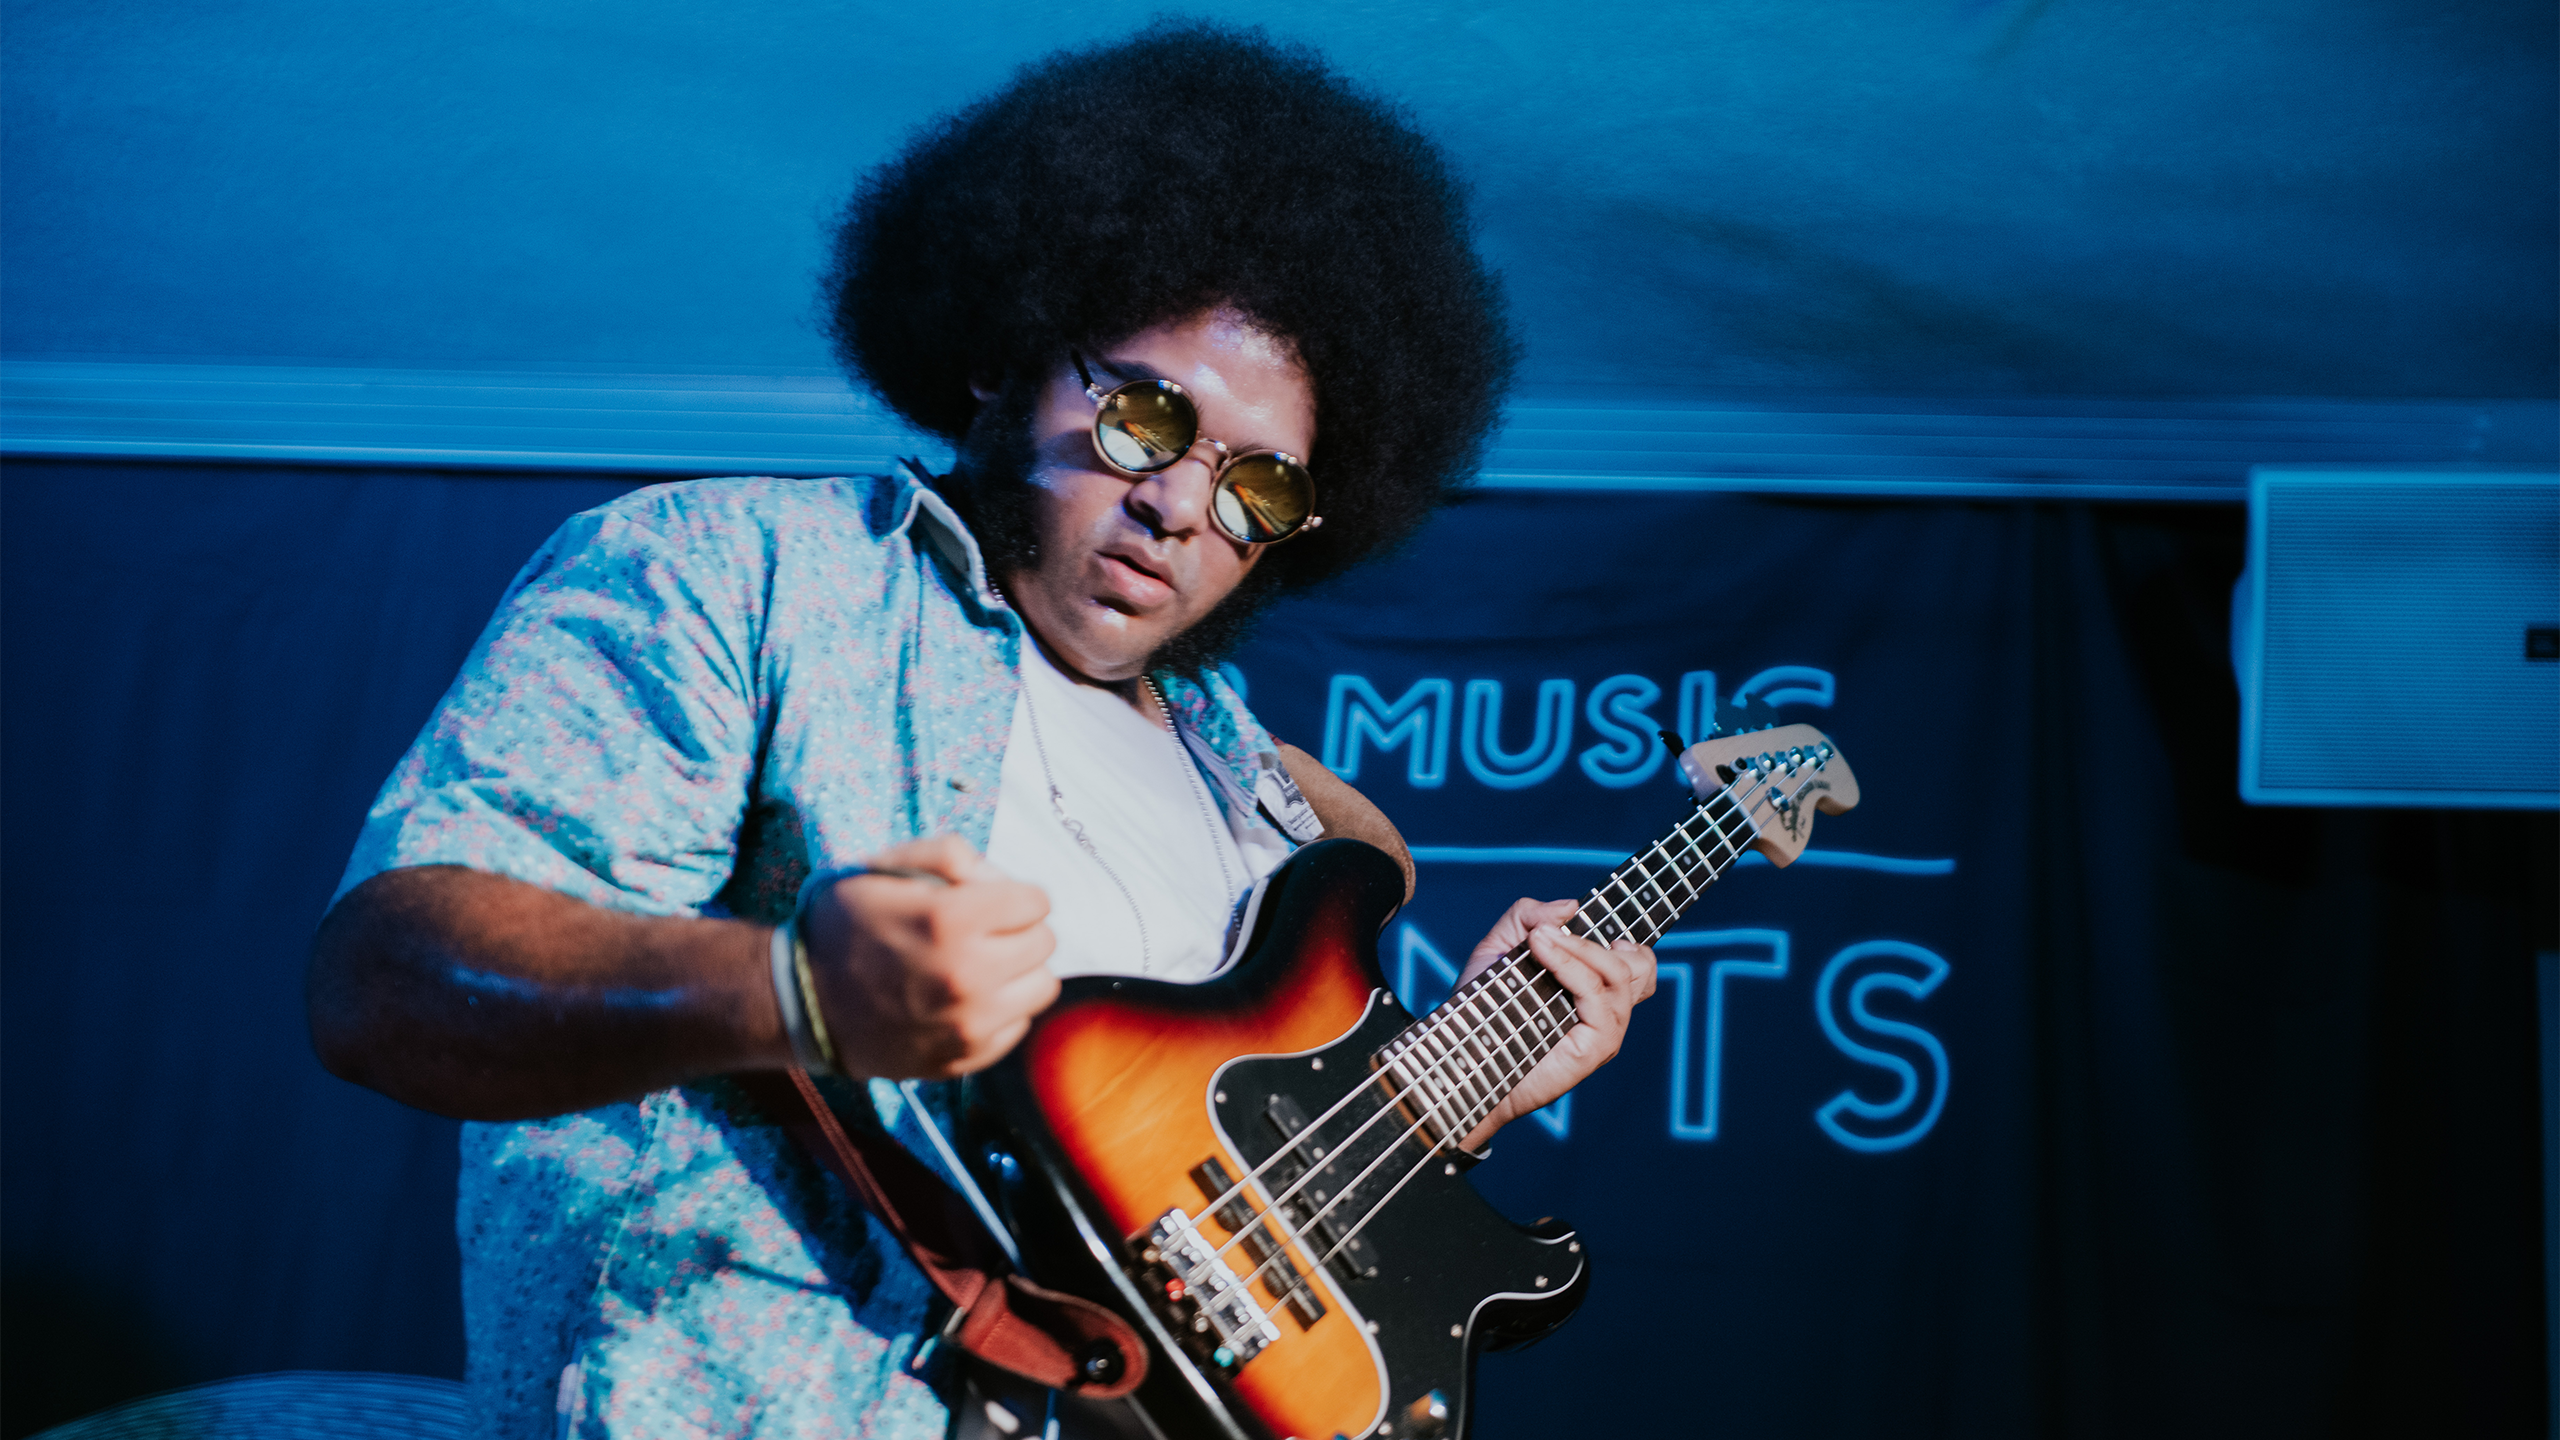 Dylan Cartlidge performs at PRS for Music Presents